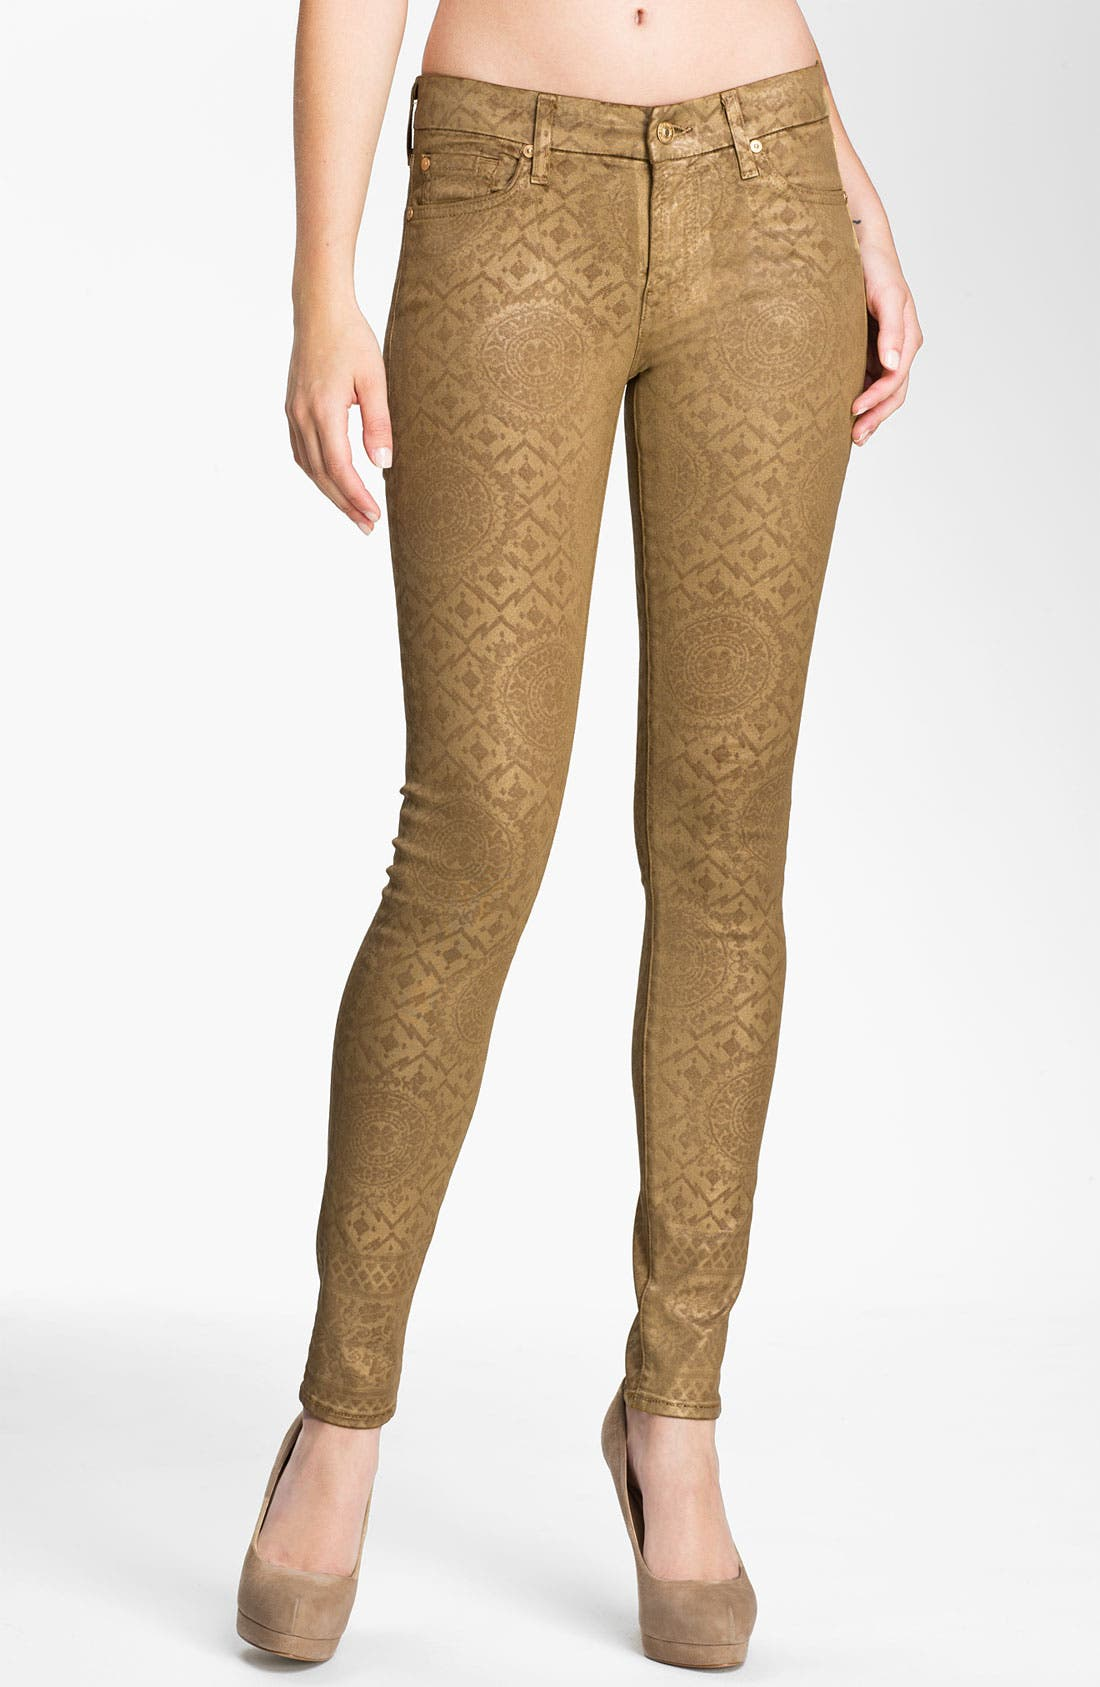 Alternate Image 1 Selected - 7 For All Mankind® Coated Print Skinny Jeans (Gold Artisan)